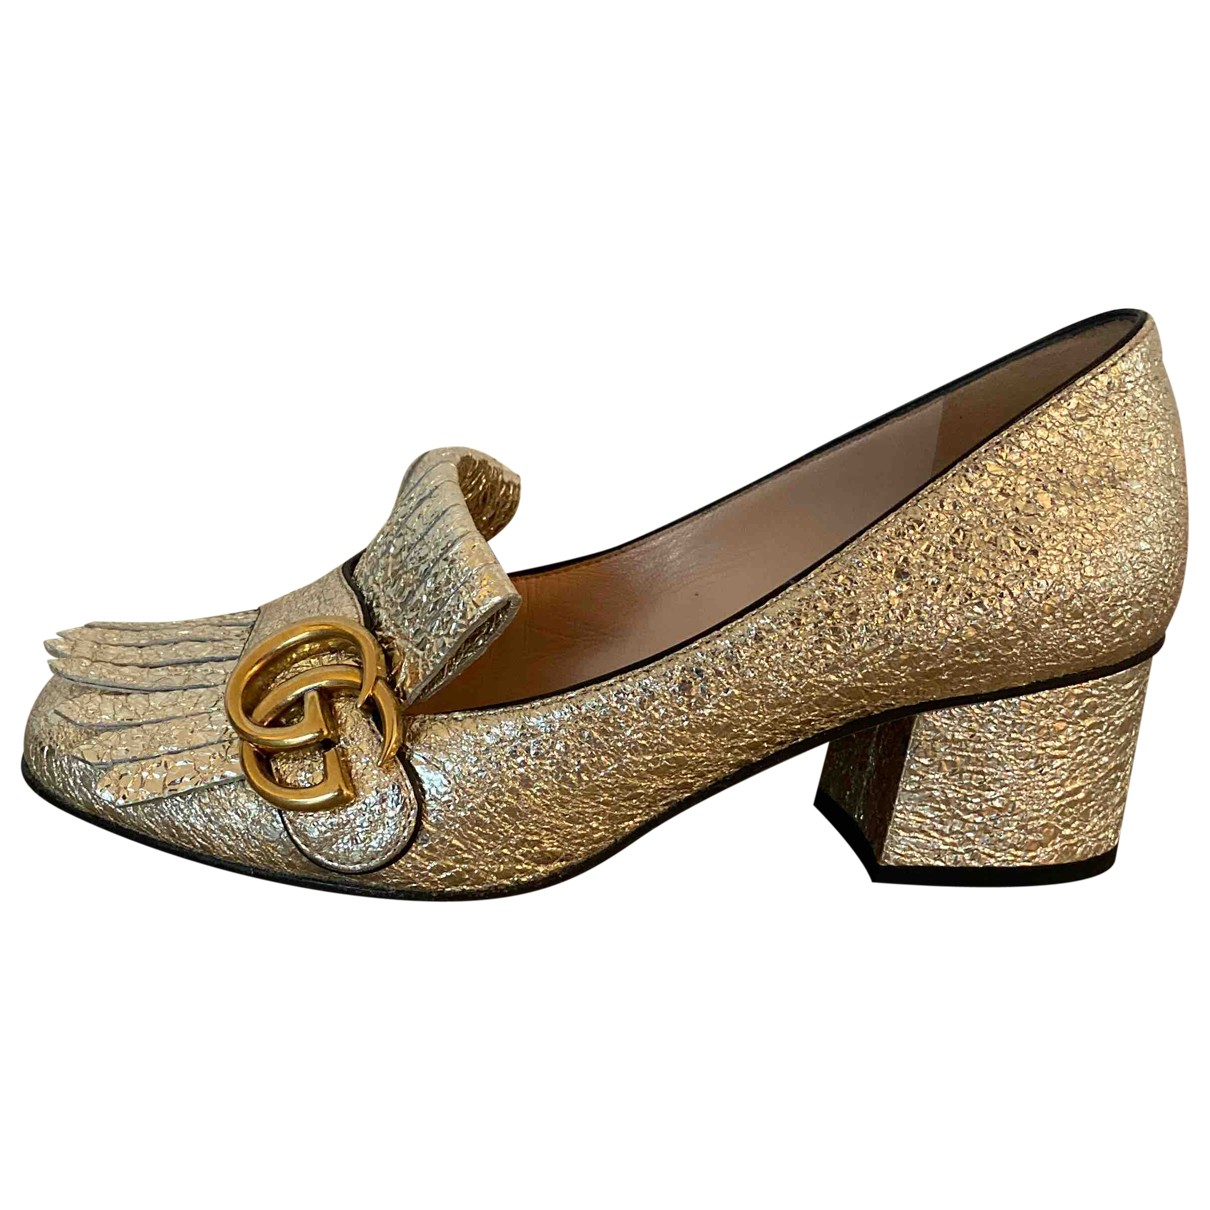 Gucci Marmont Gold Leather Flats for Women 35.5 IT